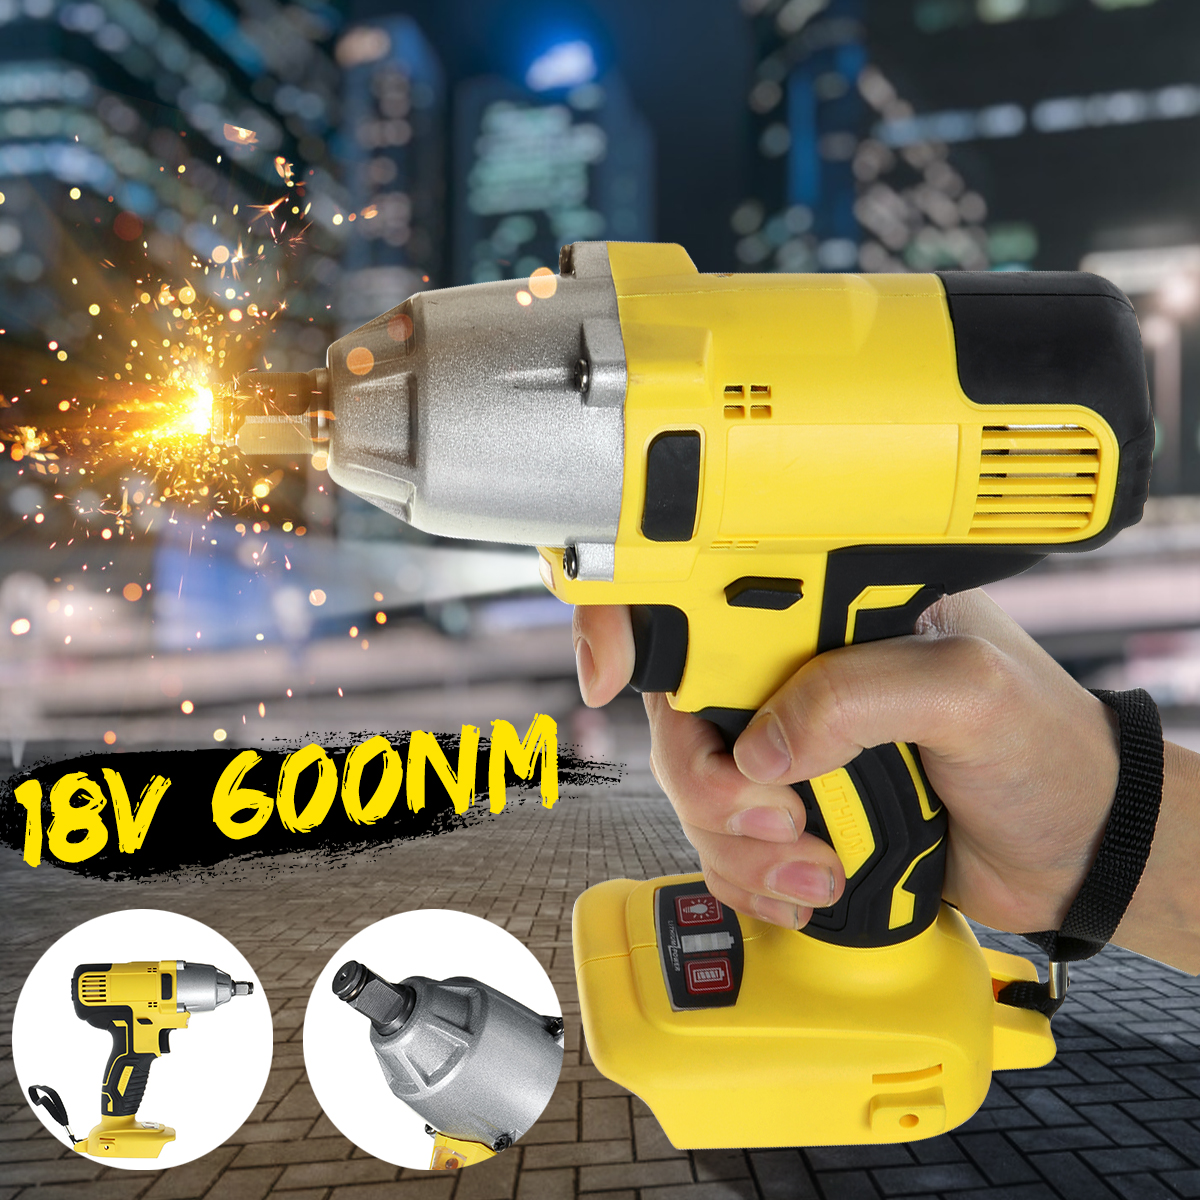 18V 6000 N.m Cordless Electric Screwdriver Speed Brushless Impact Wrench Rechargable Drill Driver+ LED Light For Makita Battery